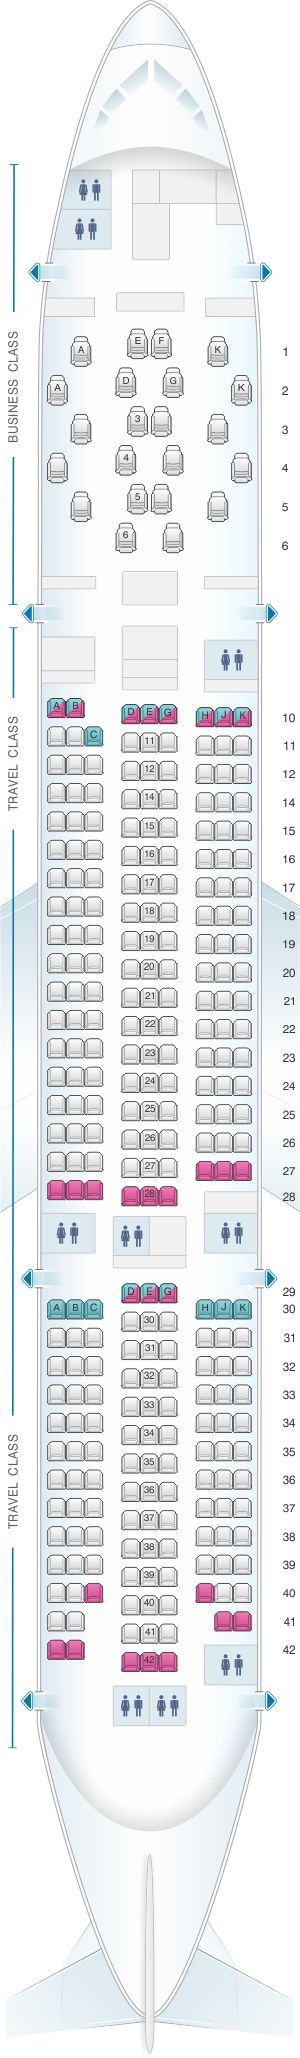 Seat Map Asiana Airlines Boeing B777 200ER 294PAX